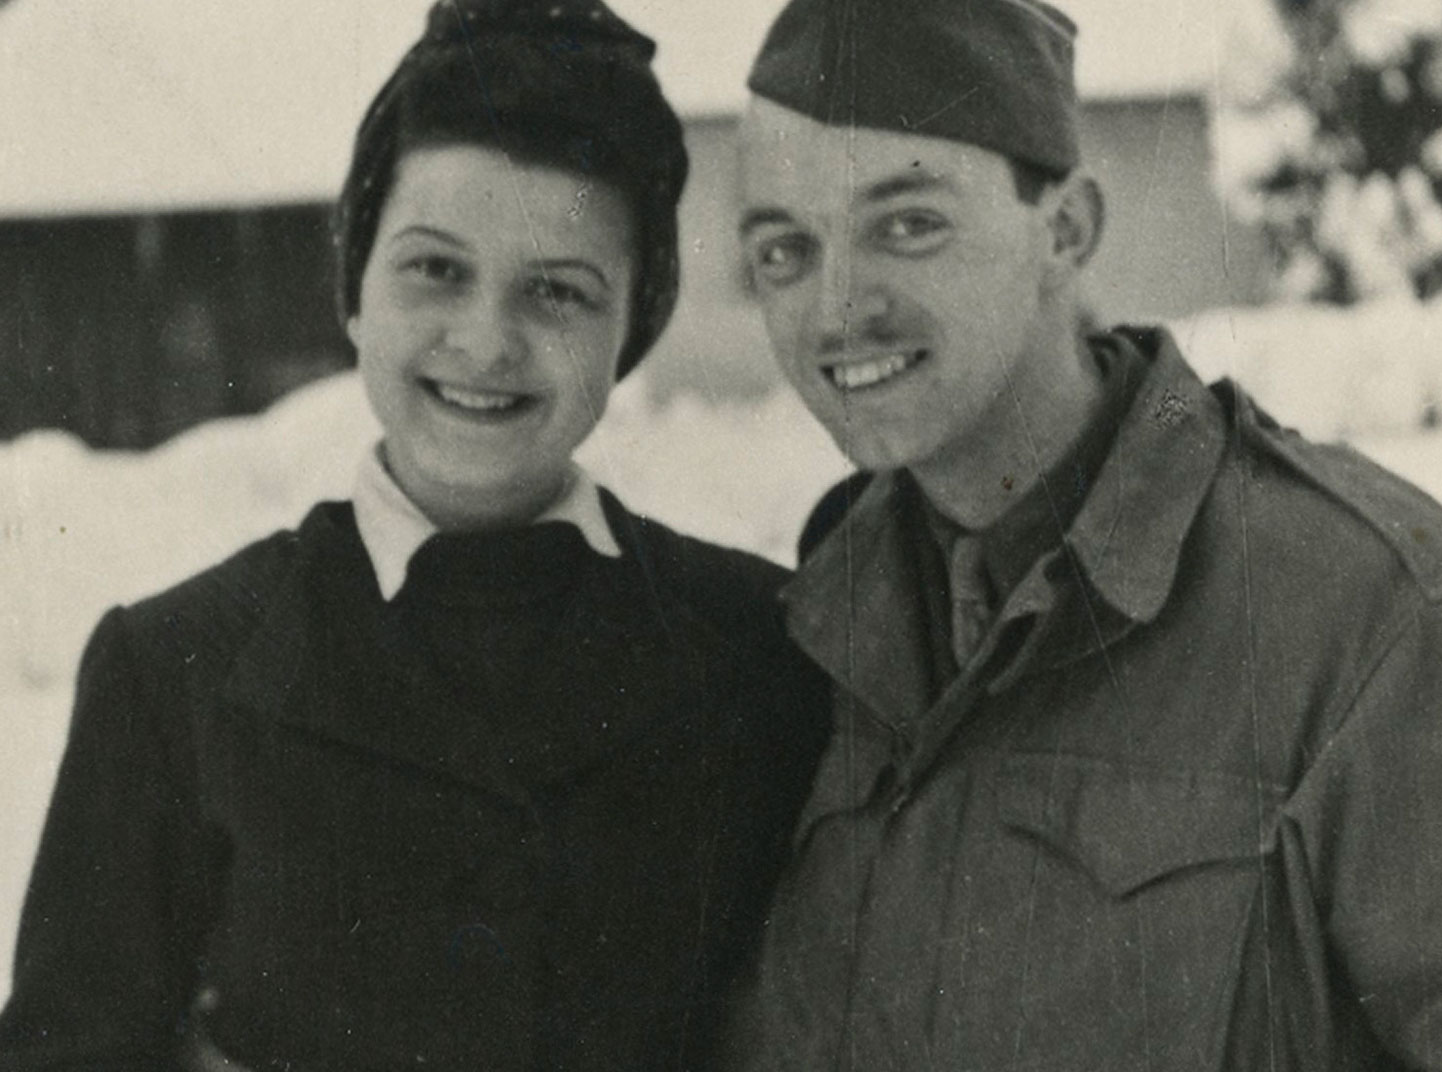 An old black and white image of a man and woman smiling and standing in the snow.